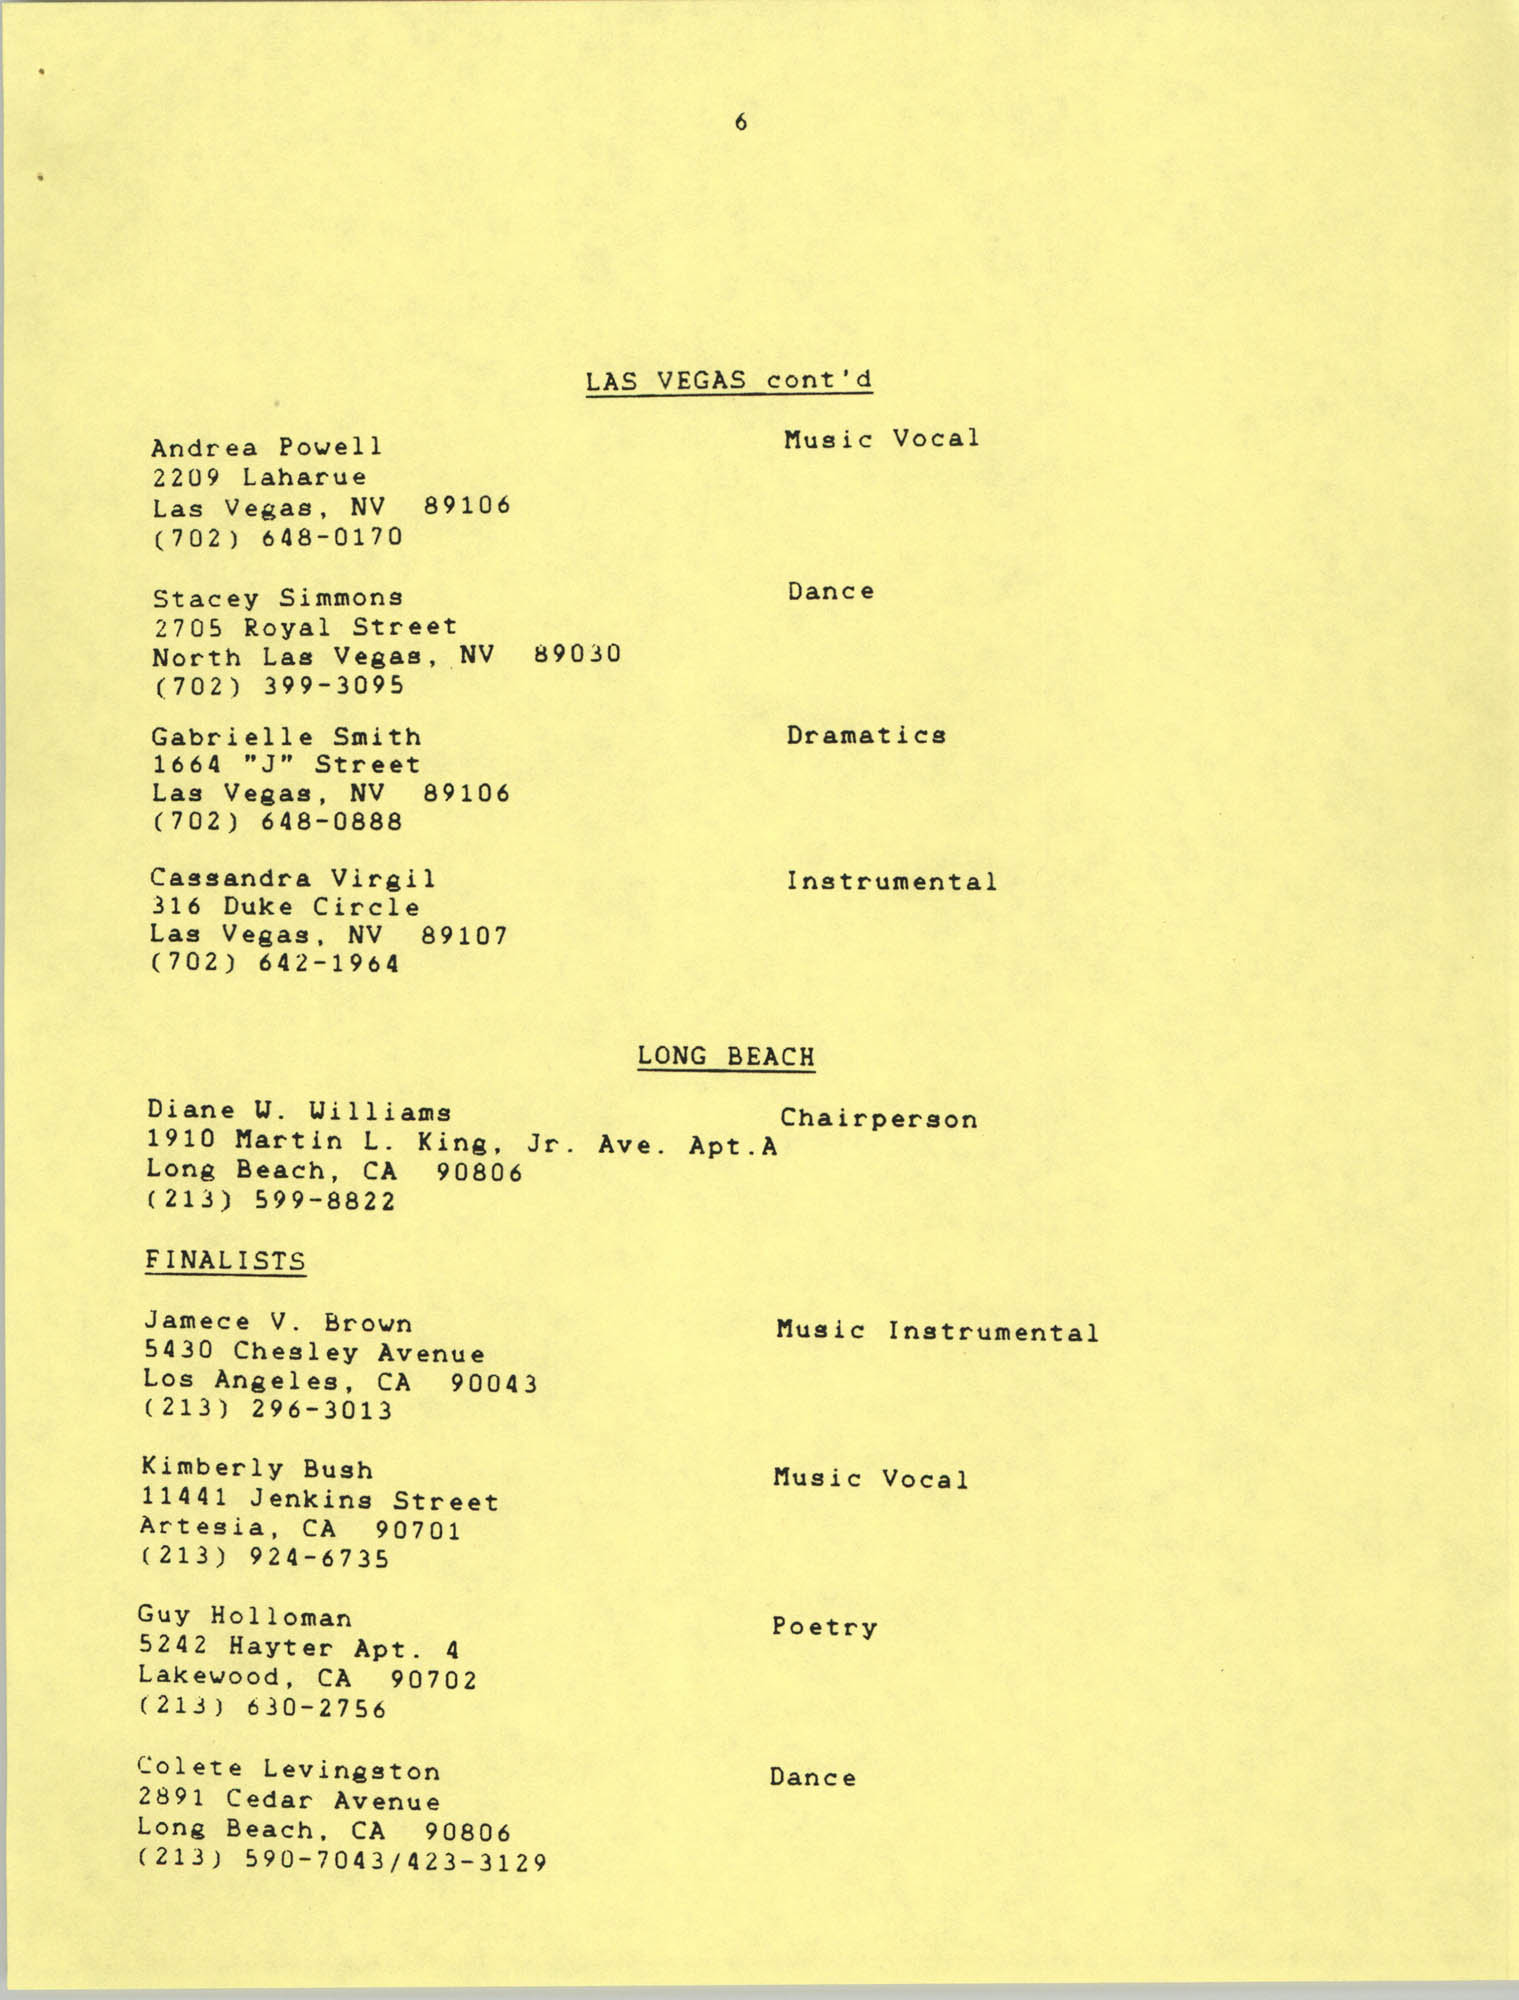 1987 Act-So Contestants, NAACP West Coast Region, Page 6